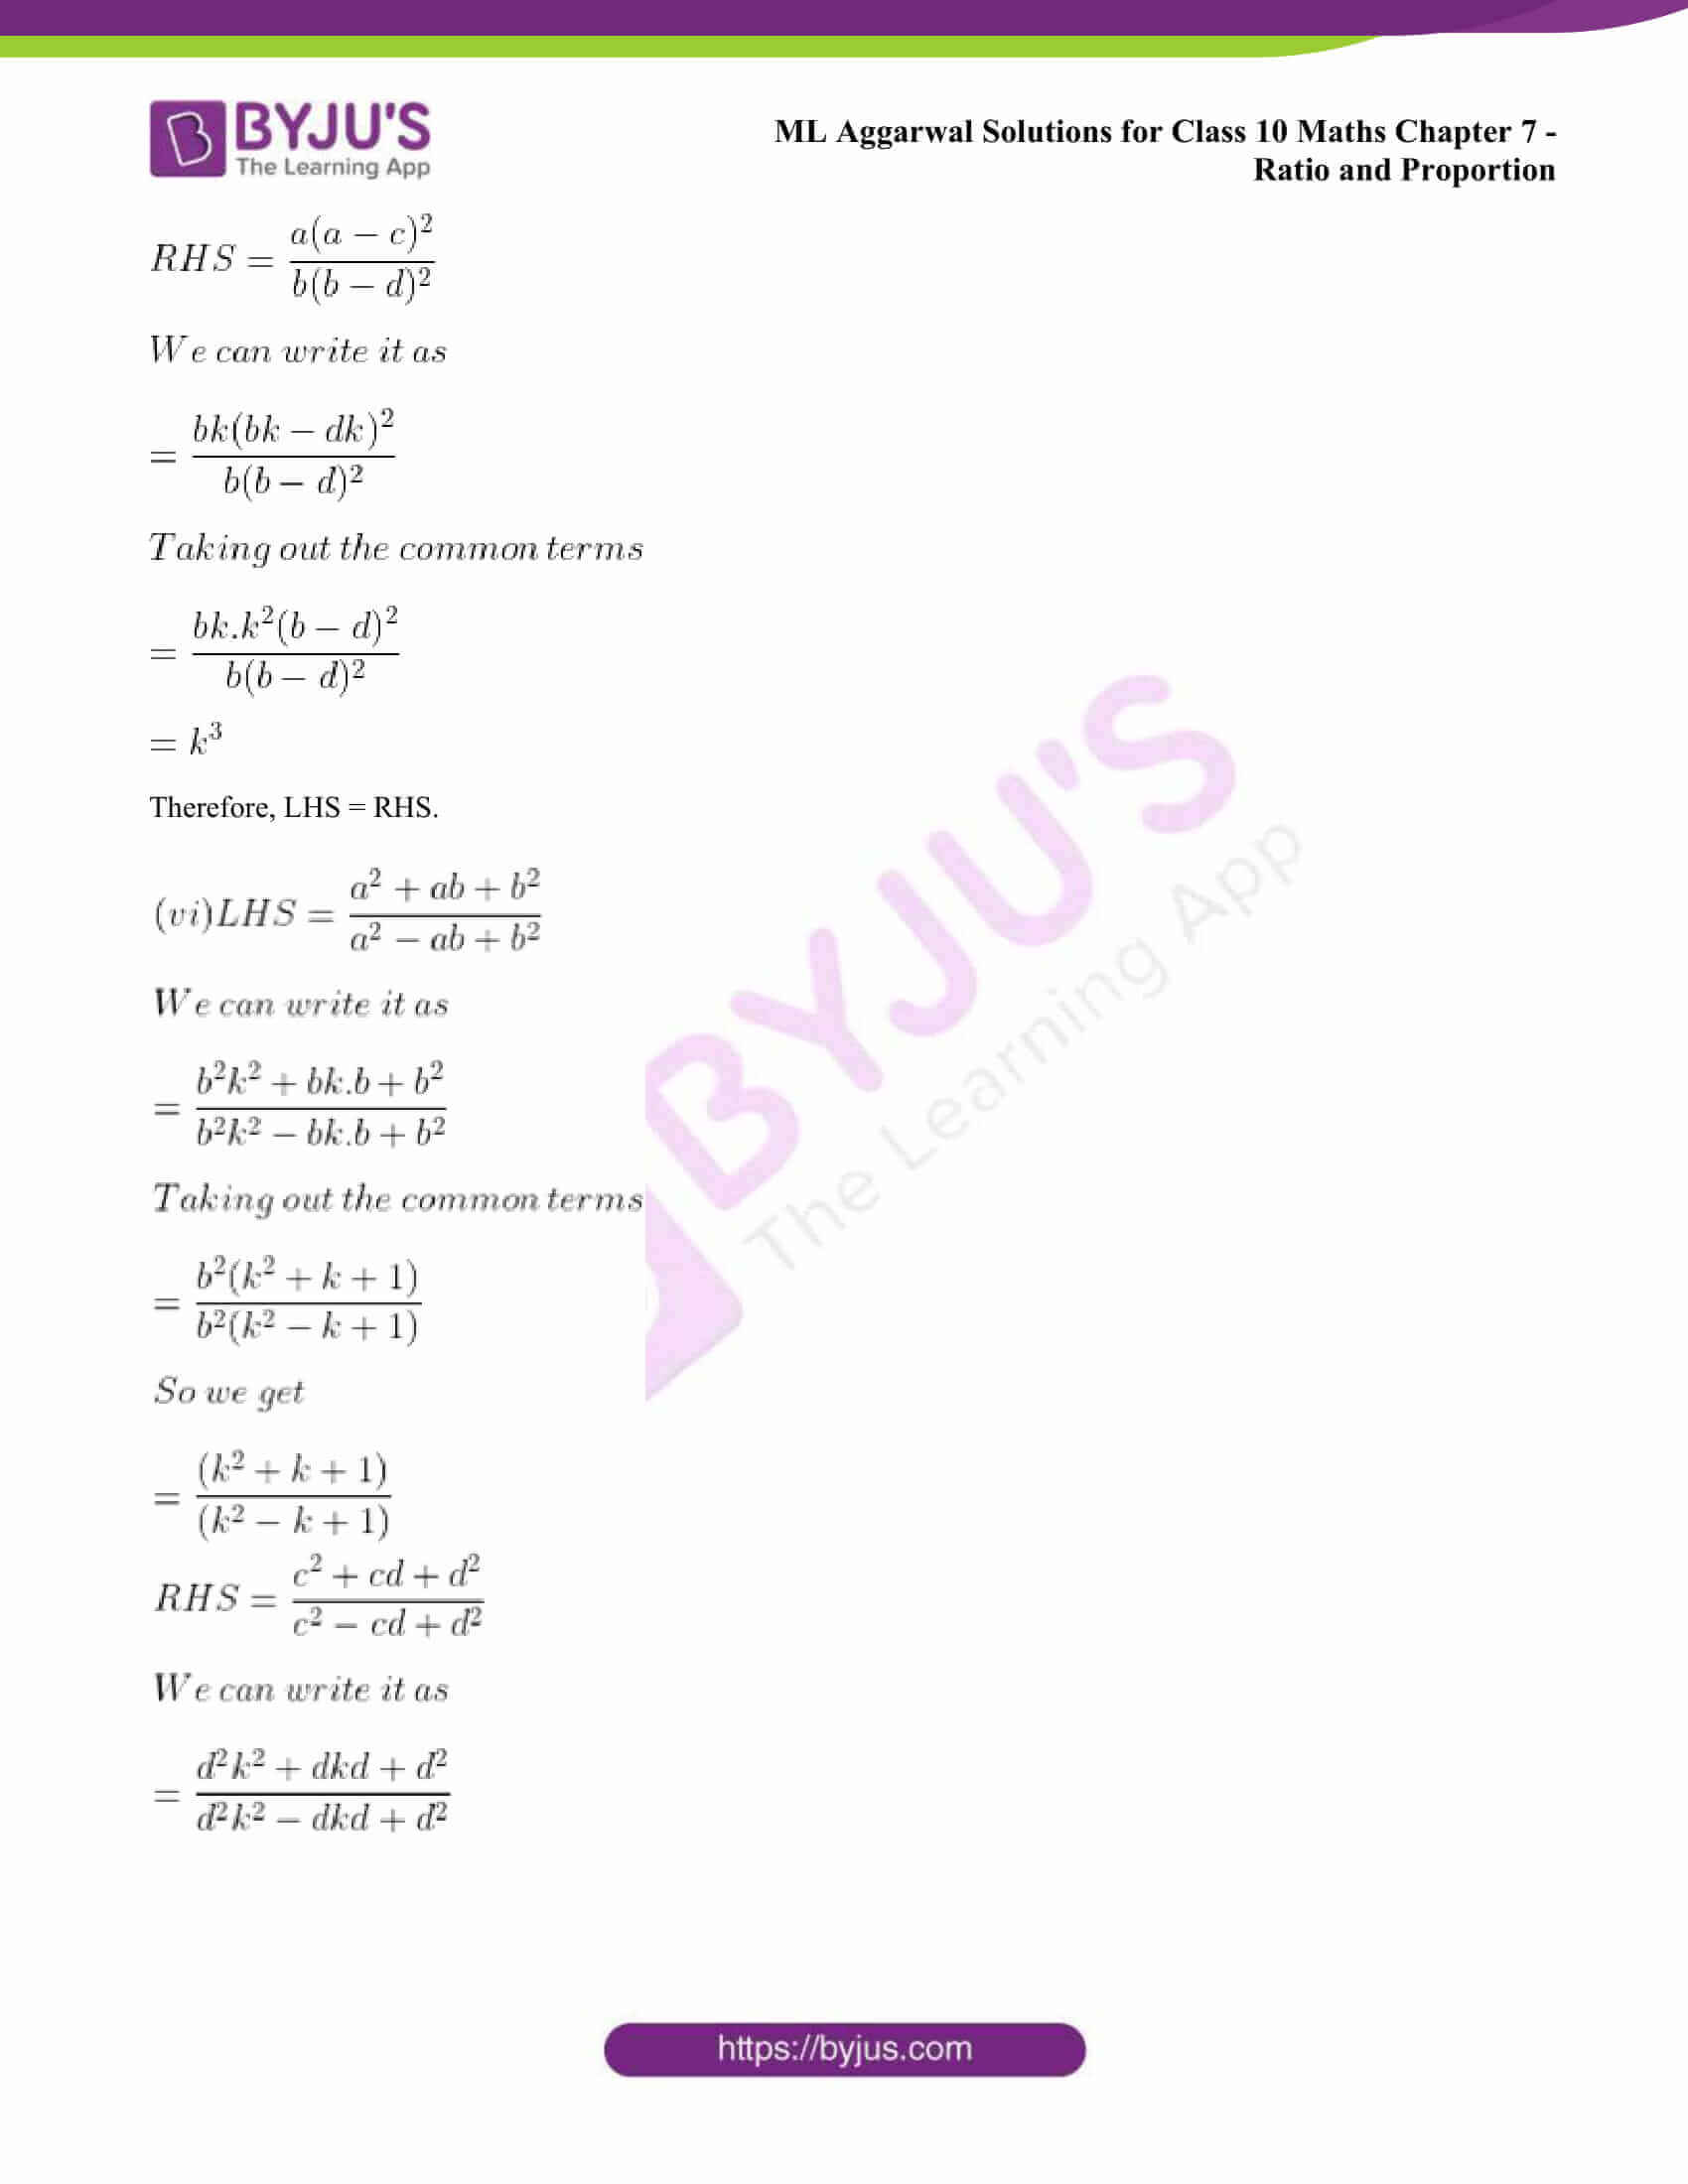 ml aggarwal solutions class 10 maths chapter 7 33